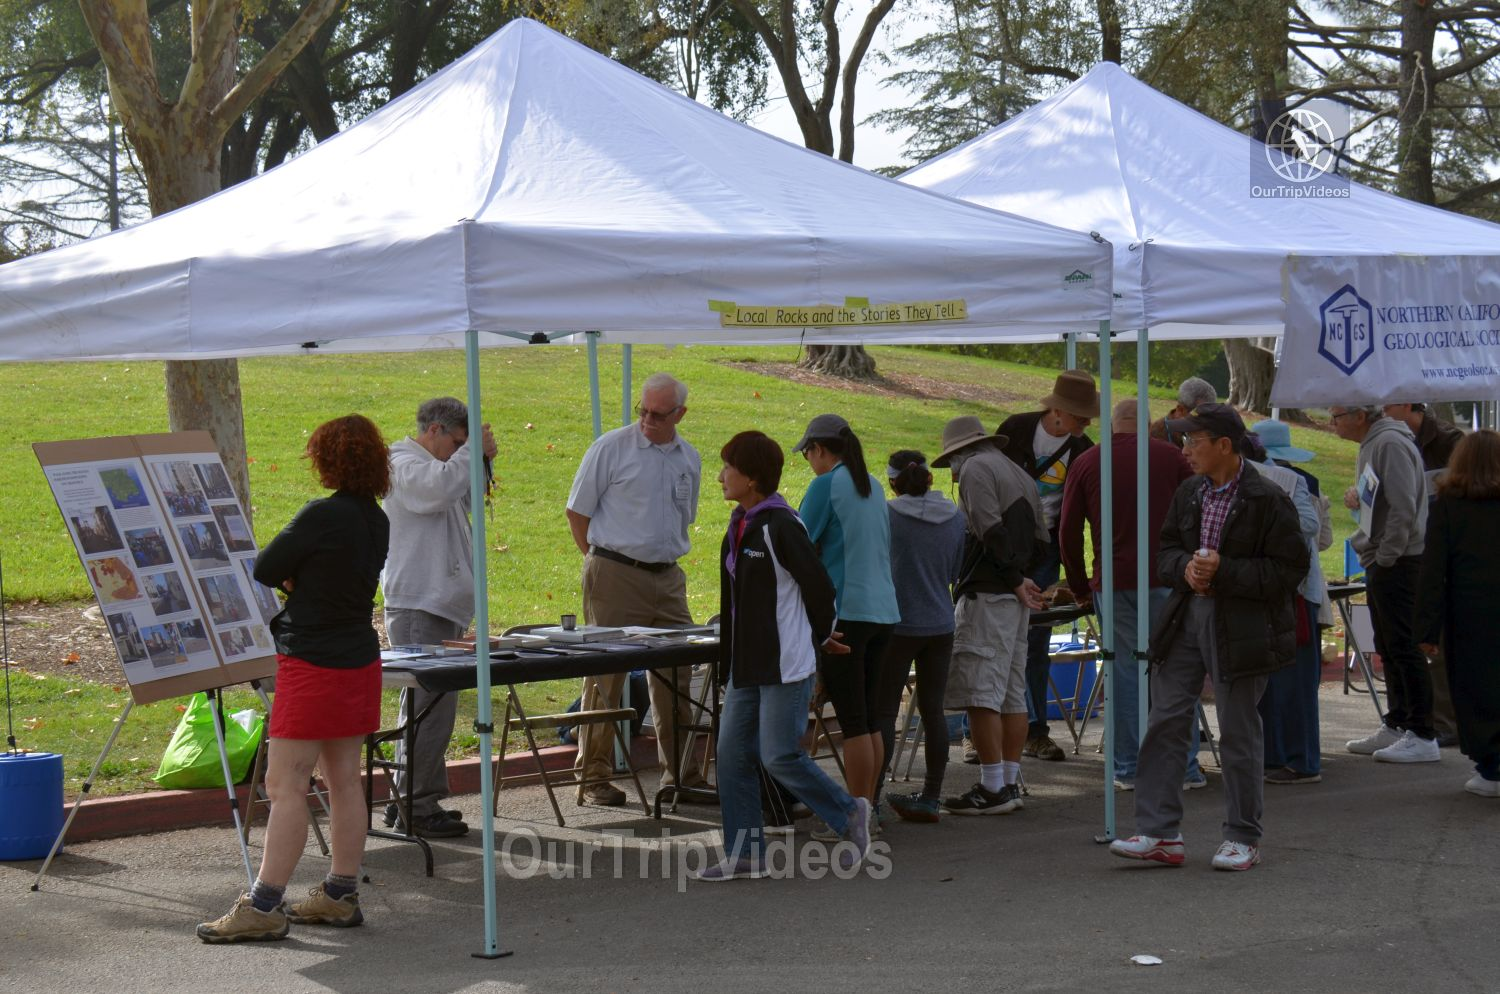 150th Celebration of 1868 Great Quake on Hayward Fault, Fremont, CA, USA - Picture 5 of 25